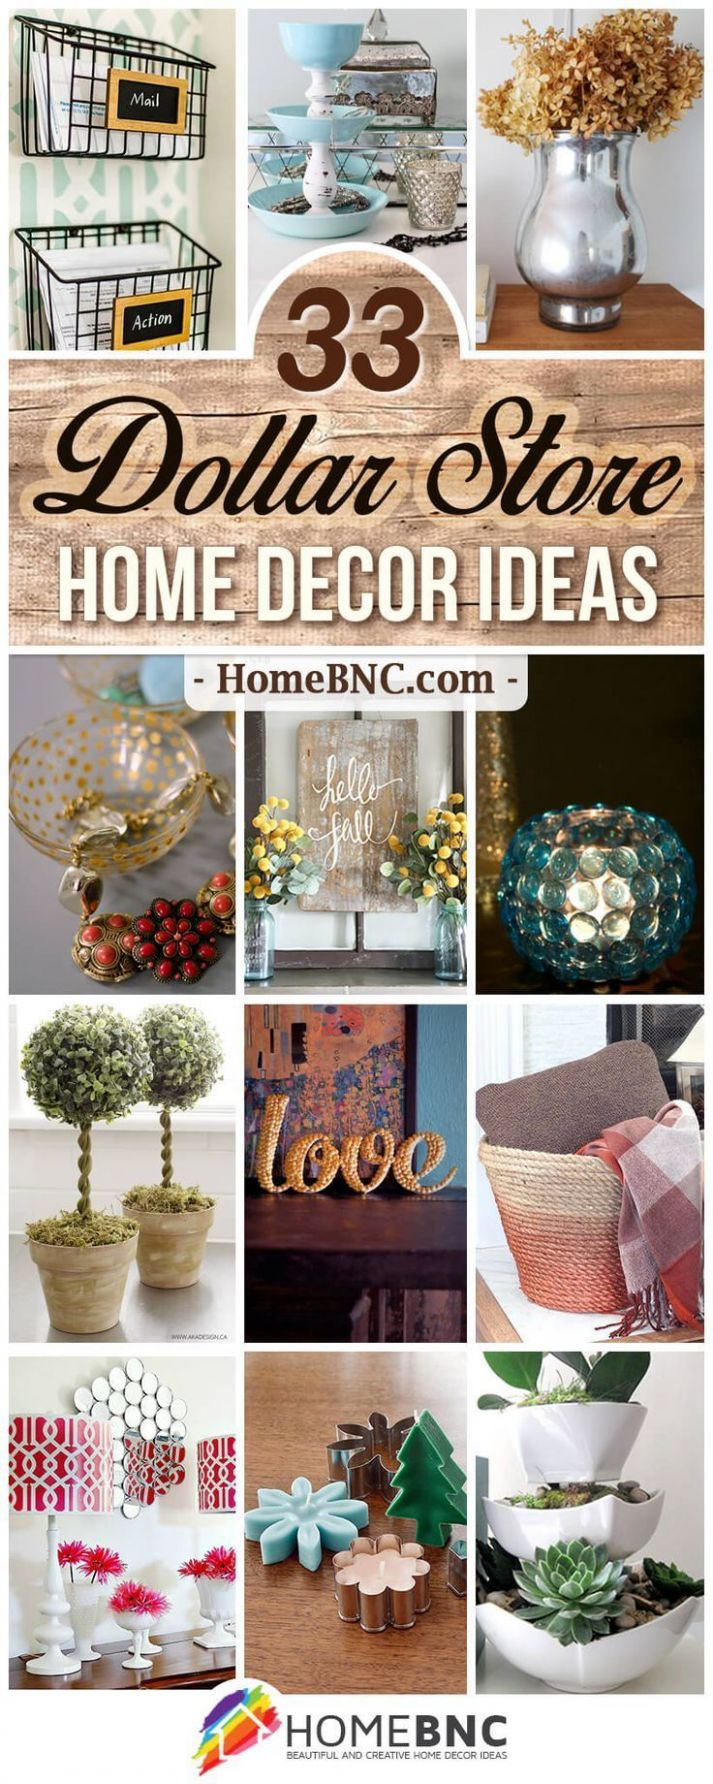 DIY Dollar Store Home Decor Ideas | Diy home decor, Diy home decor ..